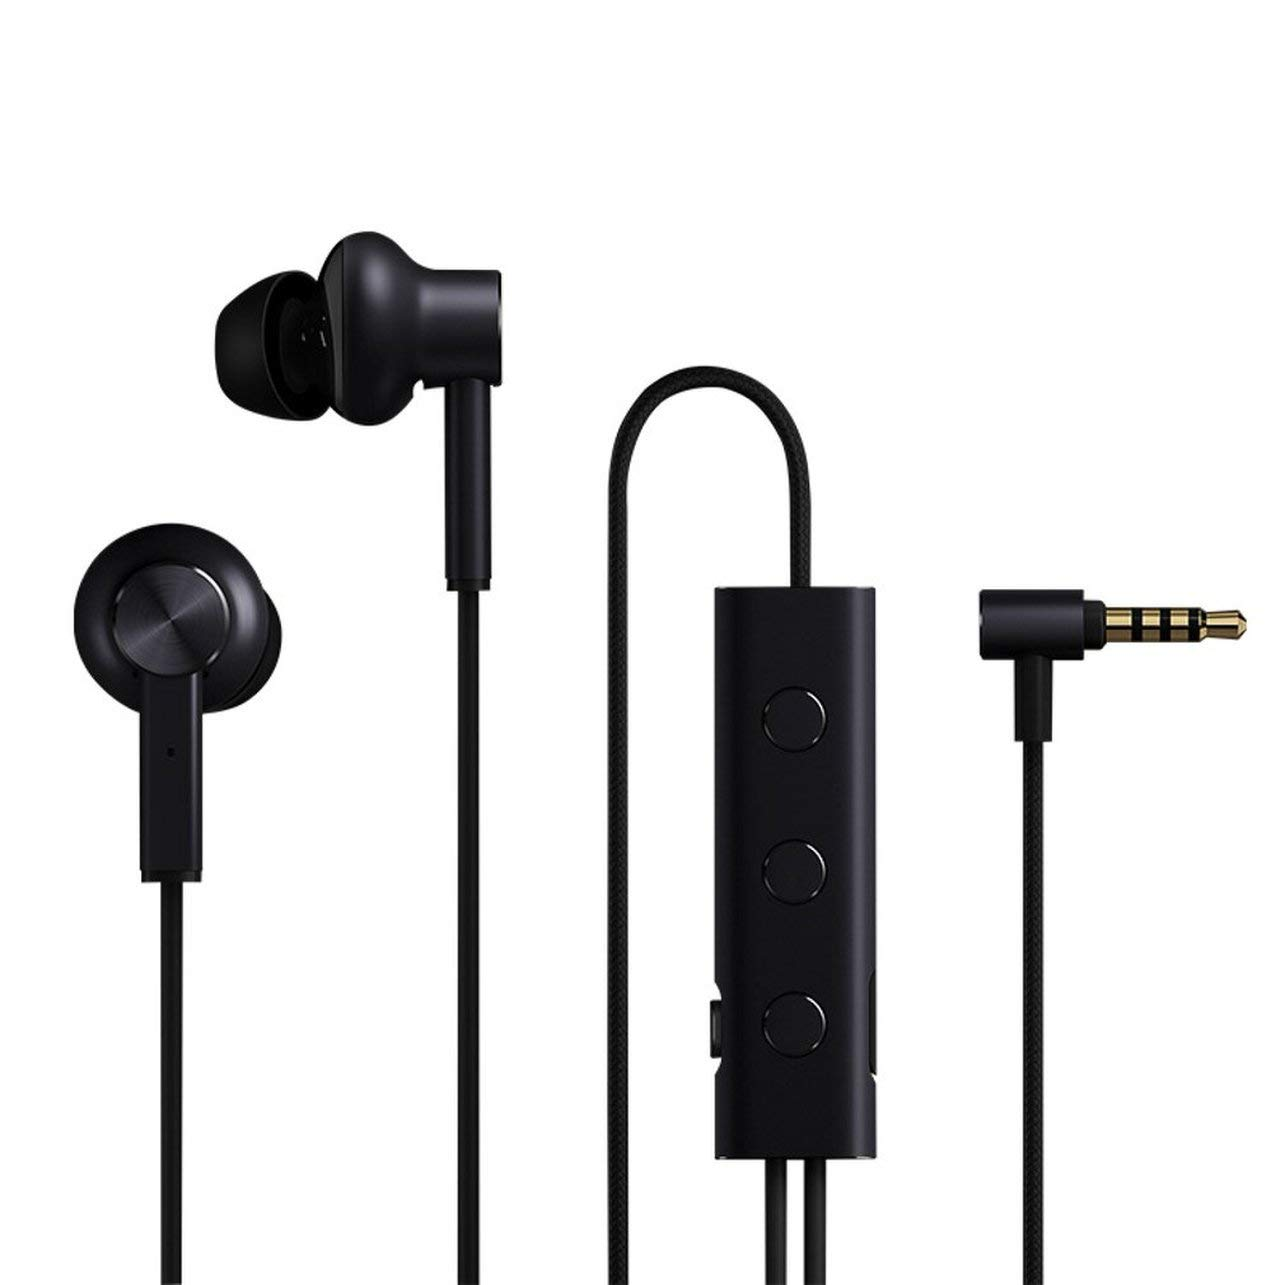 Xiaomi Mi Noise Cancelling Earphones 3.5mm Version Black (Με σύστημα μείωσης θορύβου)